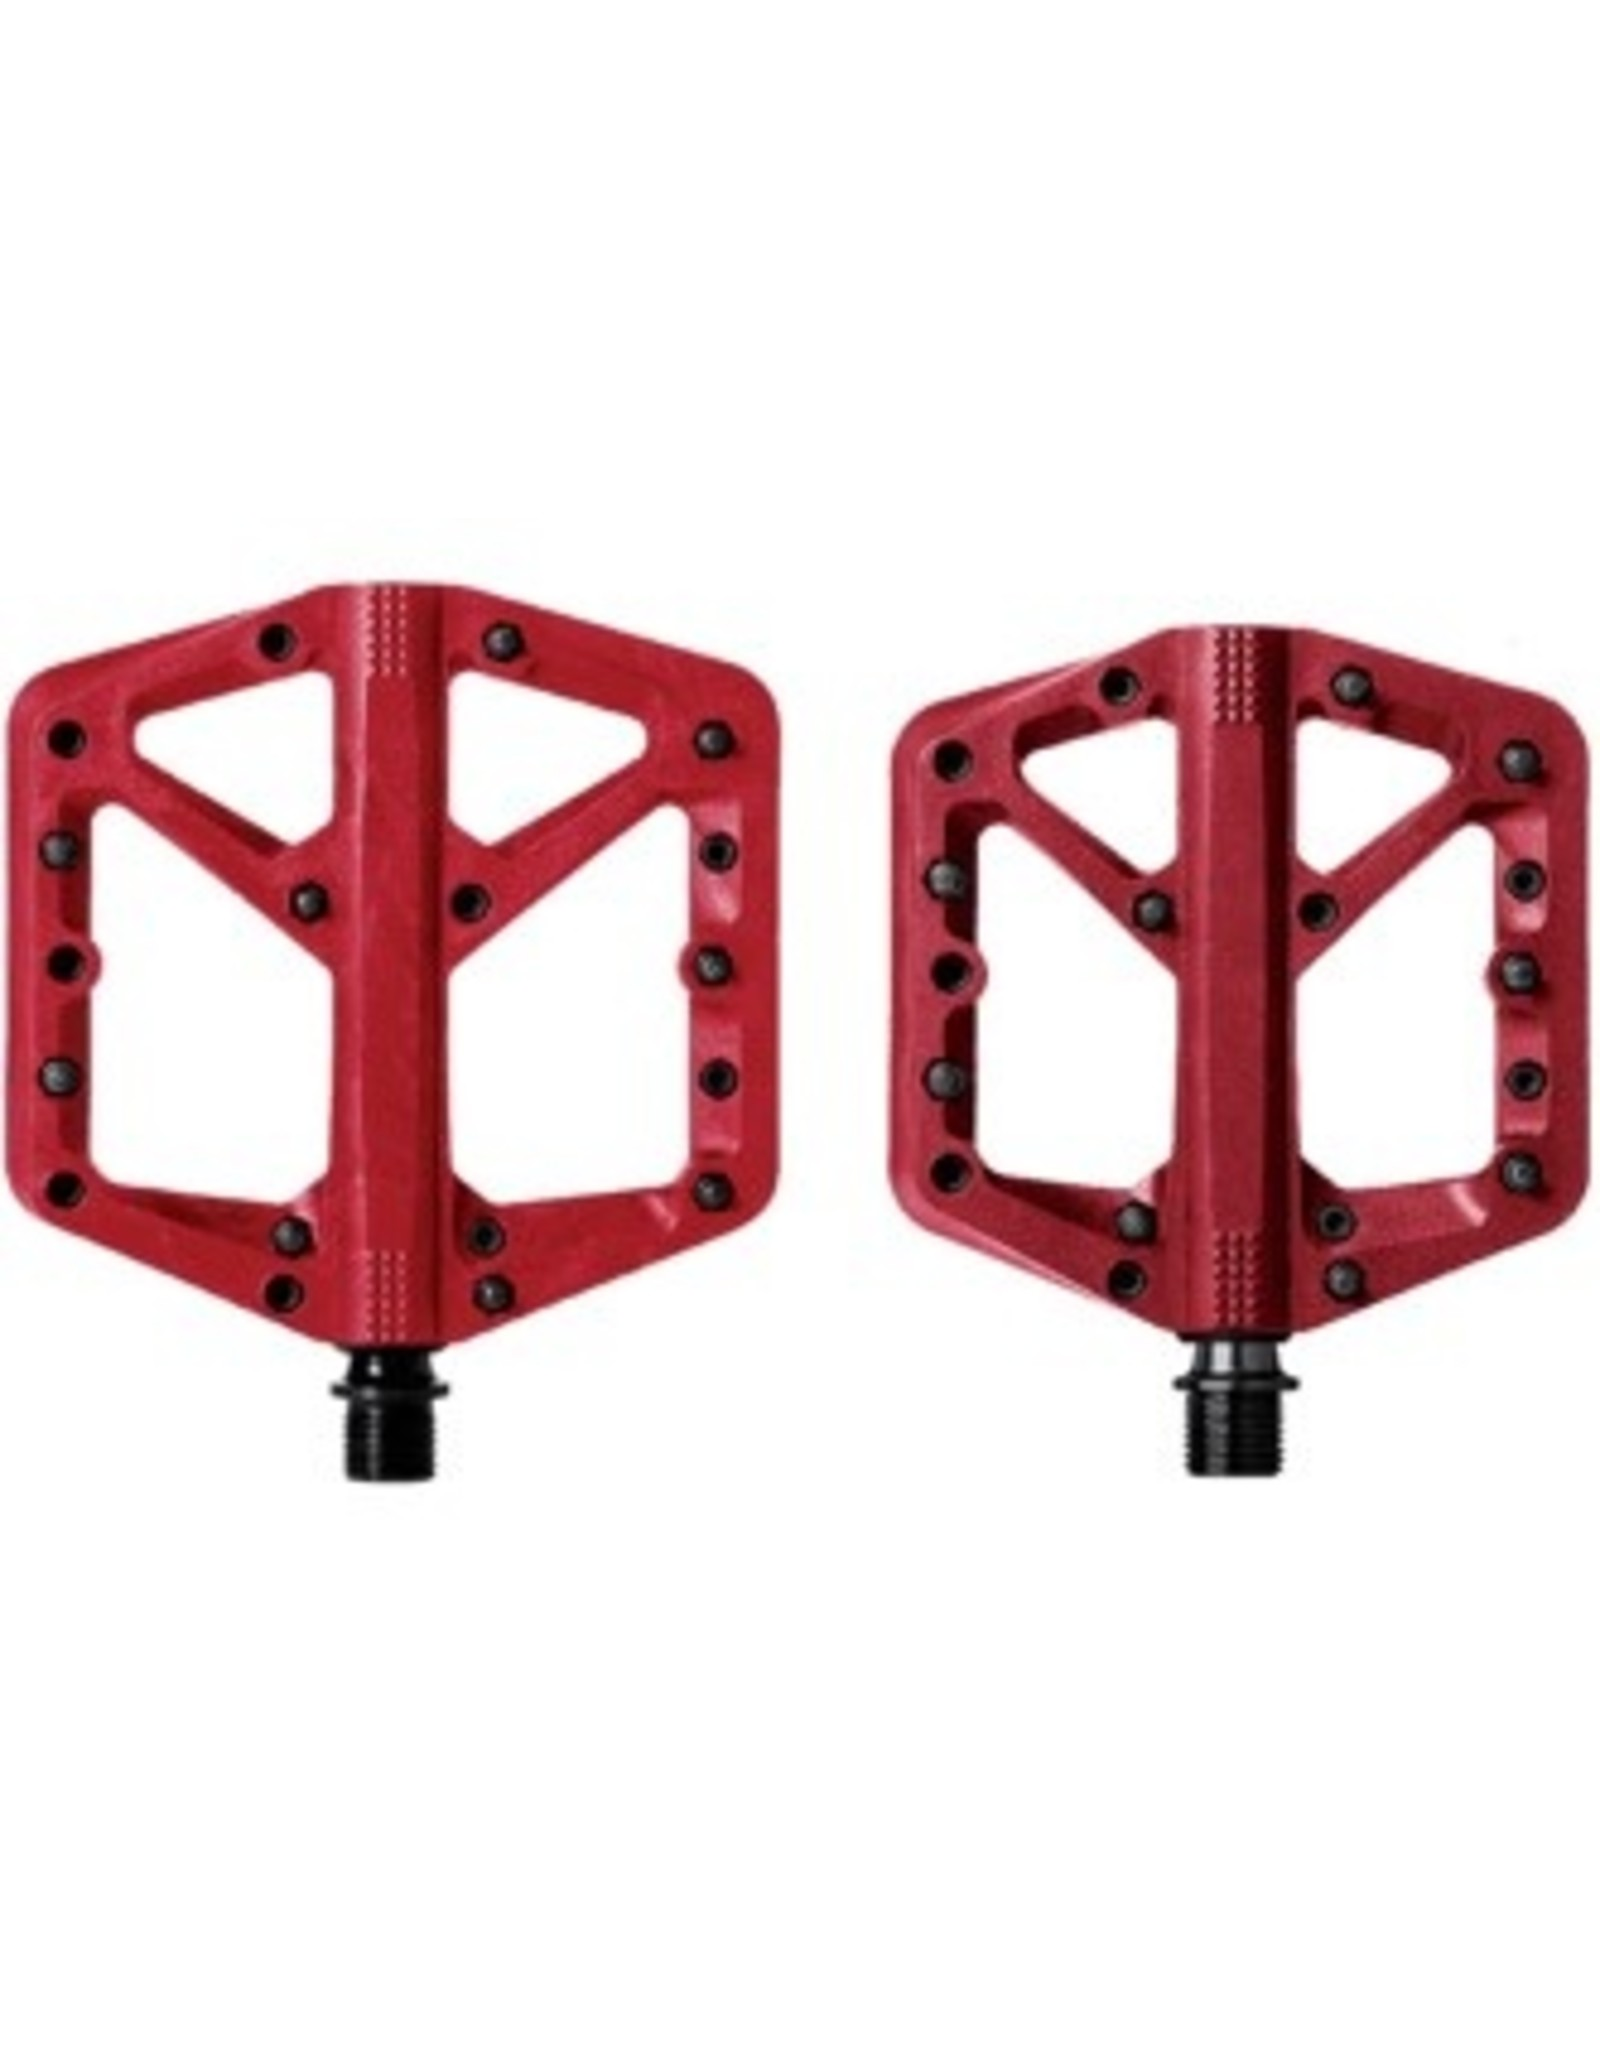 CRANK BROTHERS PÉDALE STAMP1 ROUGE - PETITE